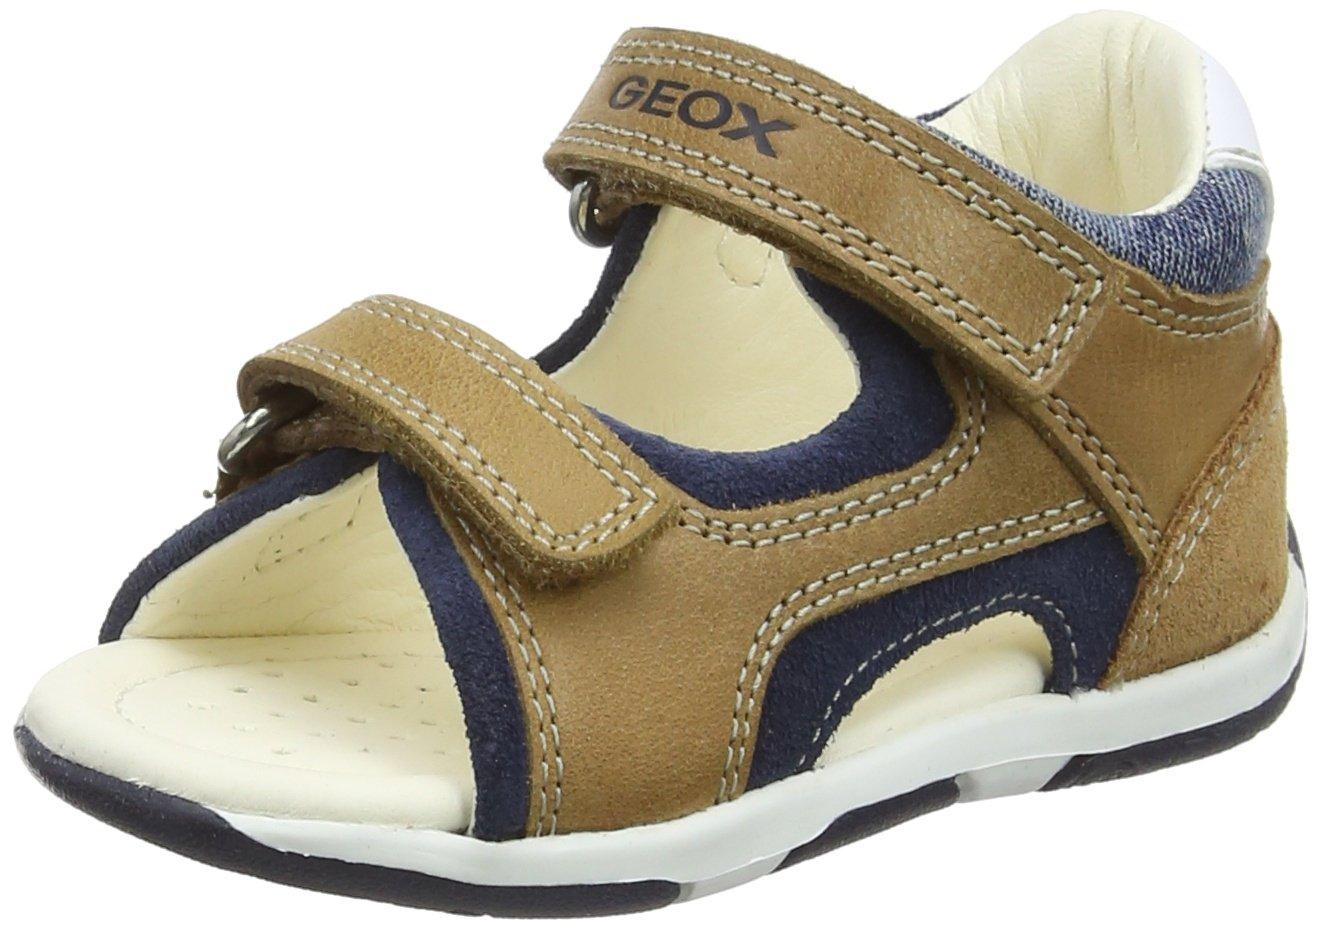 Geox TAPUZ BOY 6 Sandal, Caramel/Navy, 25 M EU Toddler (8.5 US) by Geox